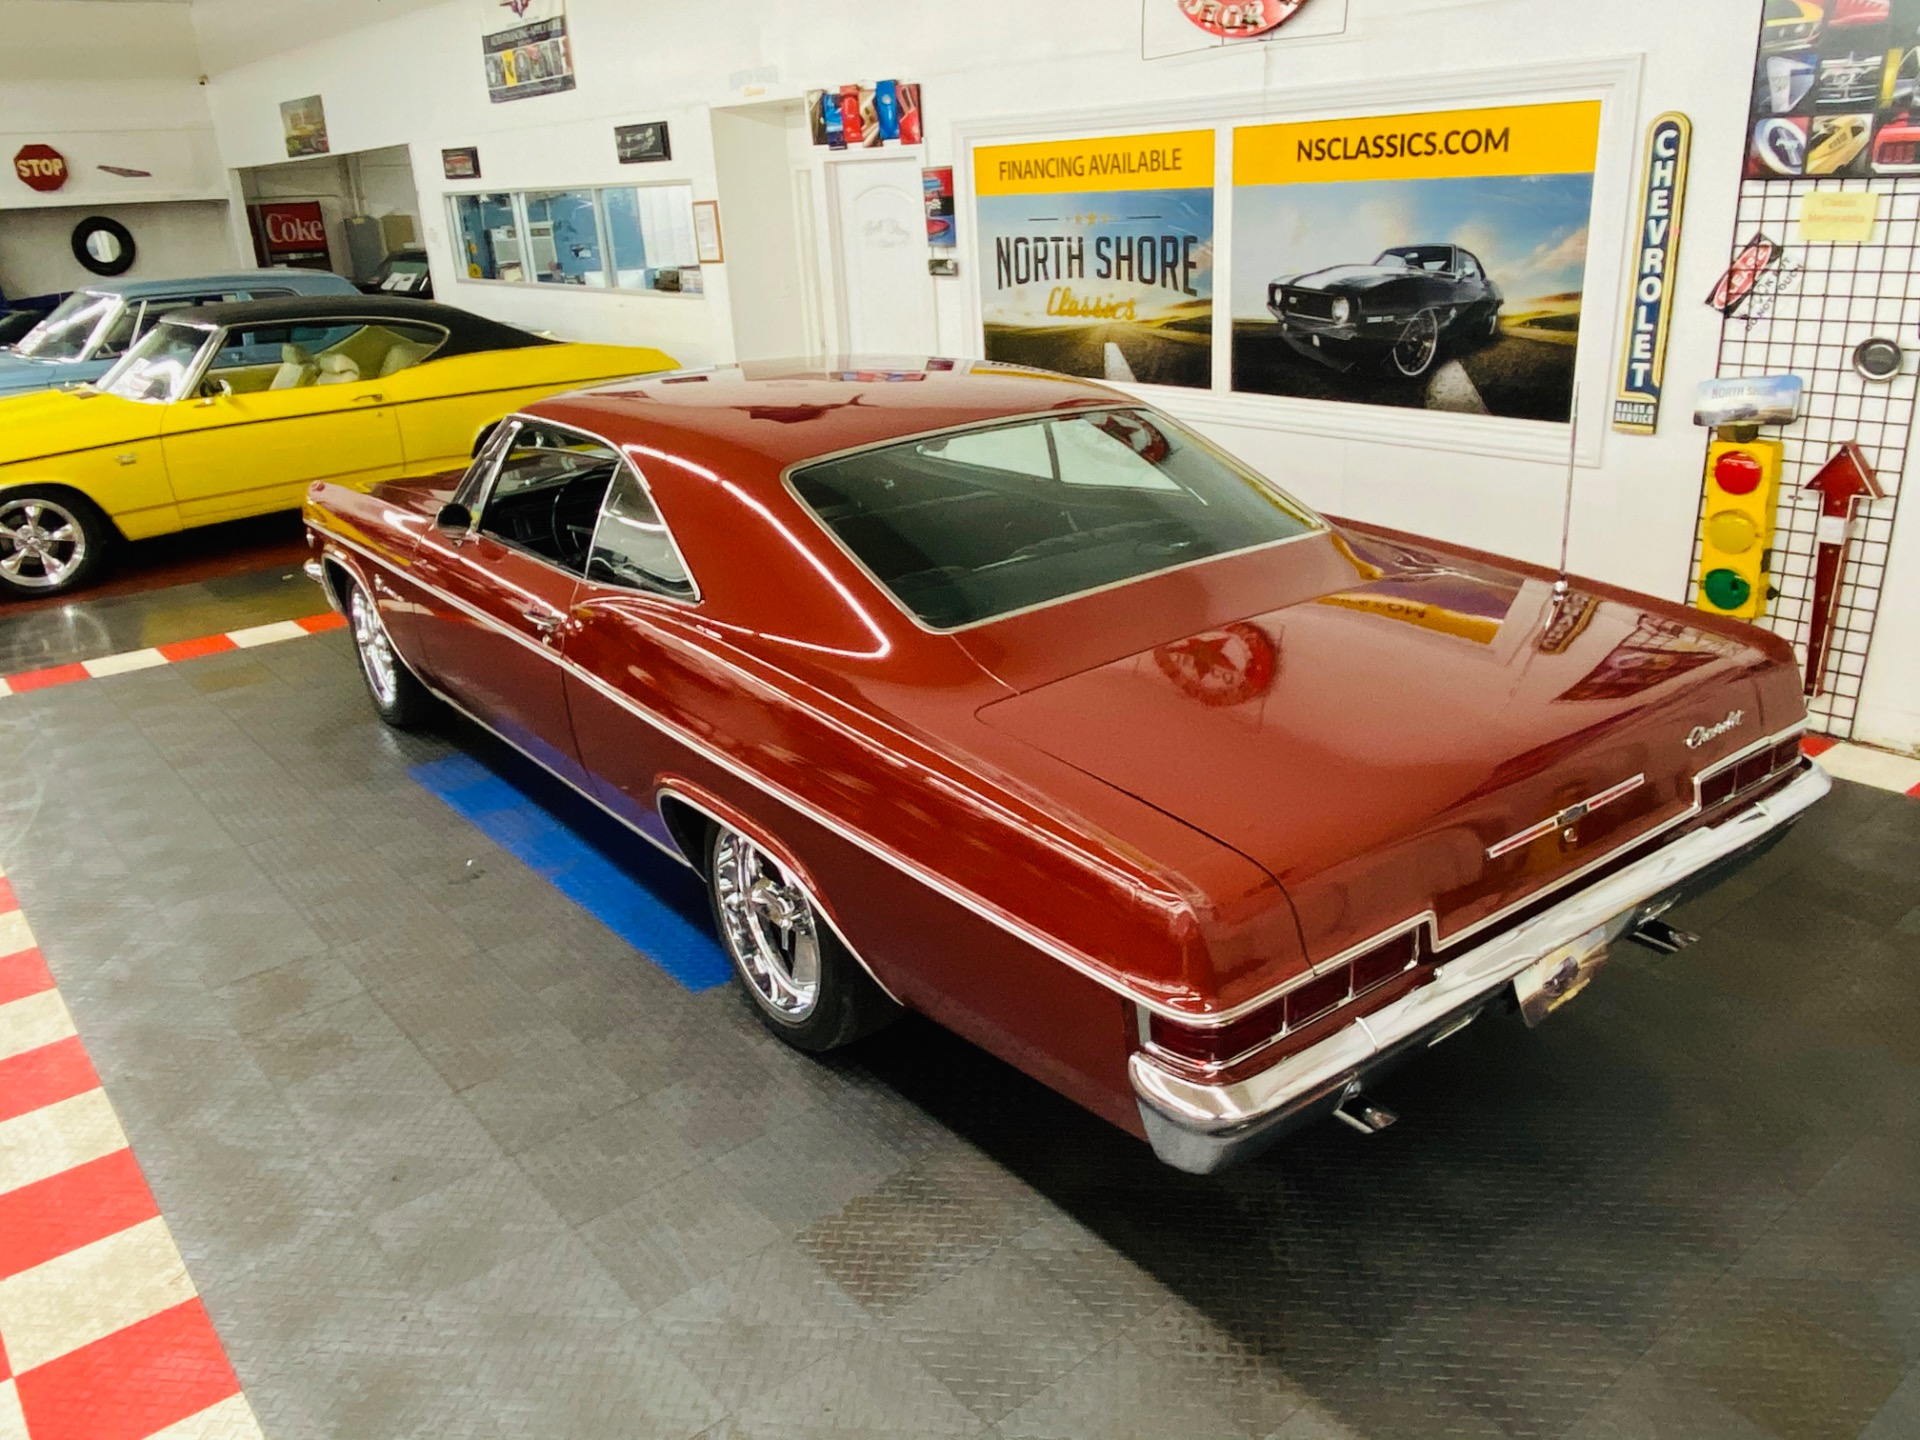 Used 1966 Chevrolet Impala - VERY LOW ORIGINAL MILES - CLEAN SOUTHERN CAR - SEE VIDEO | Mundelein, IL